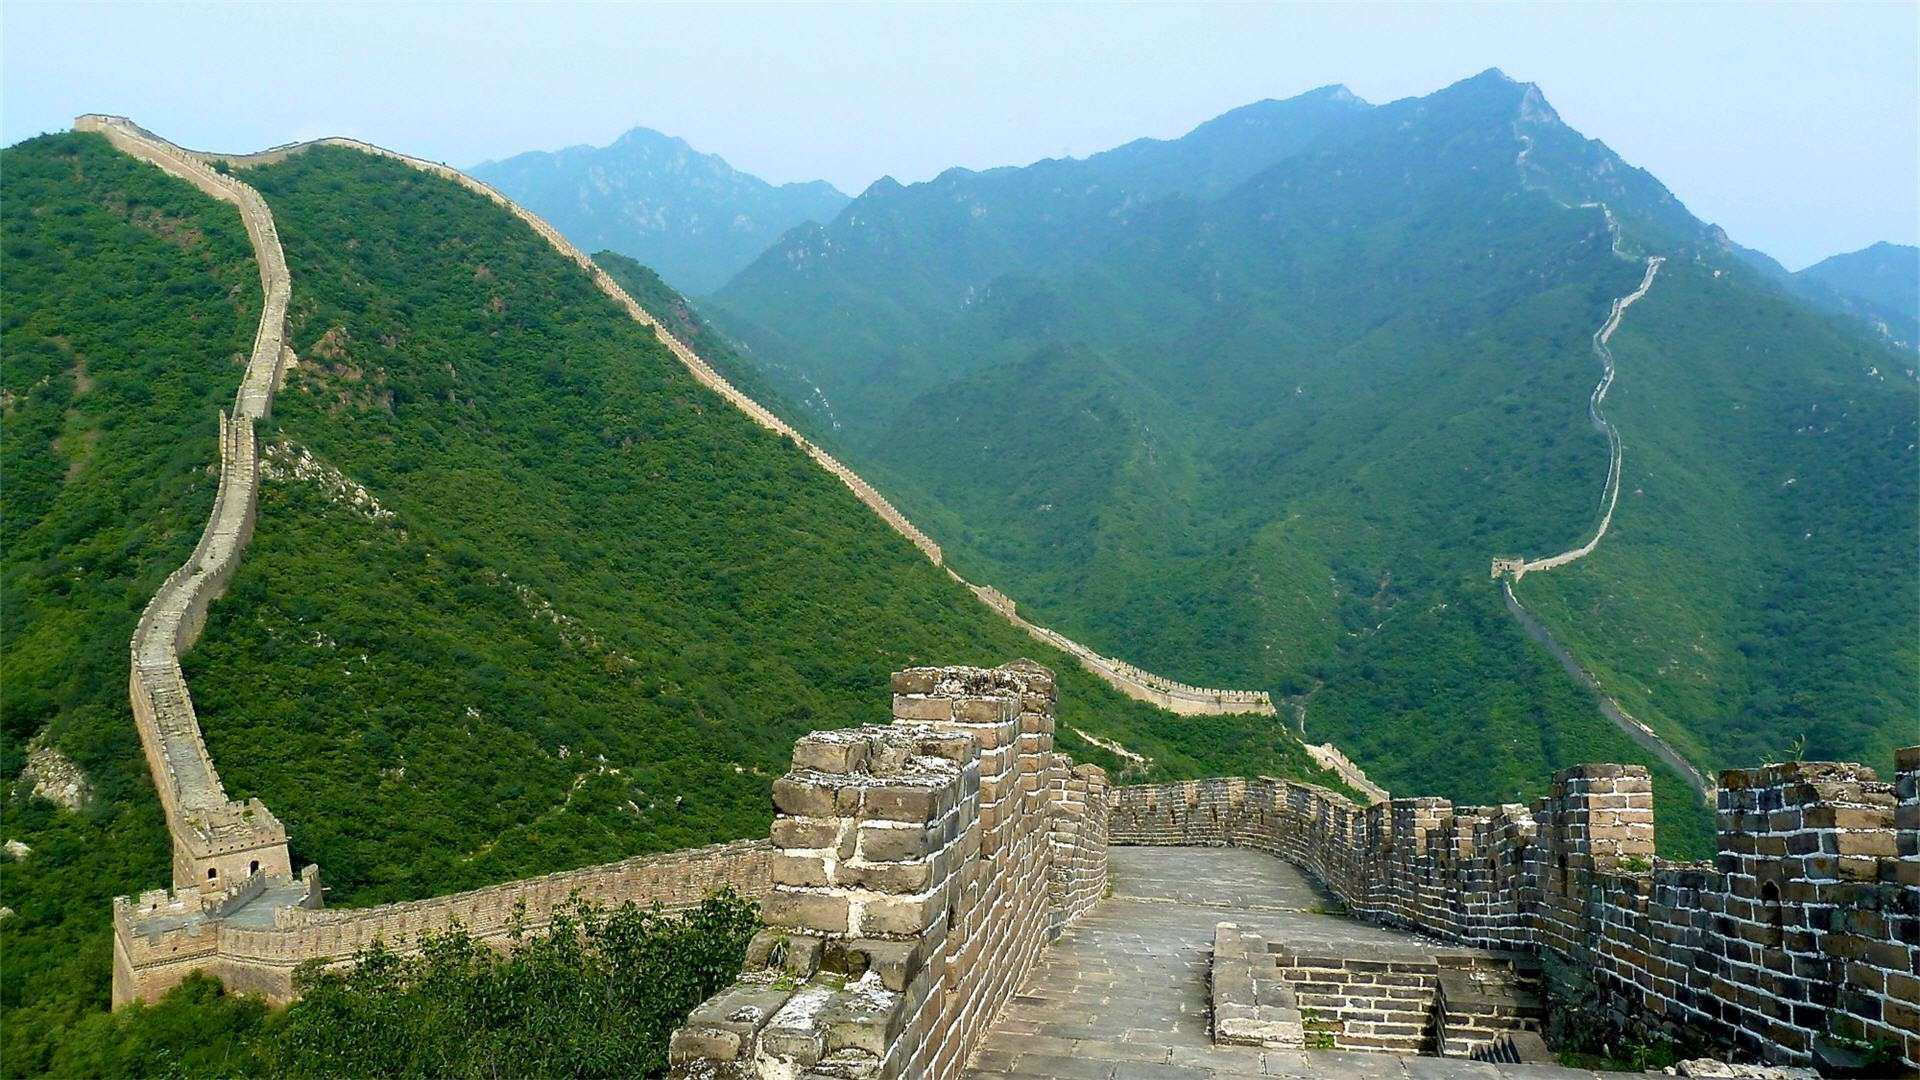 Free Download Image Beautiful Pictures Of Great Wall Of China 650